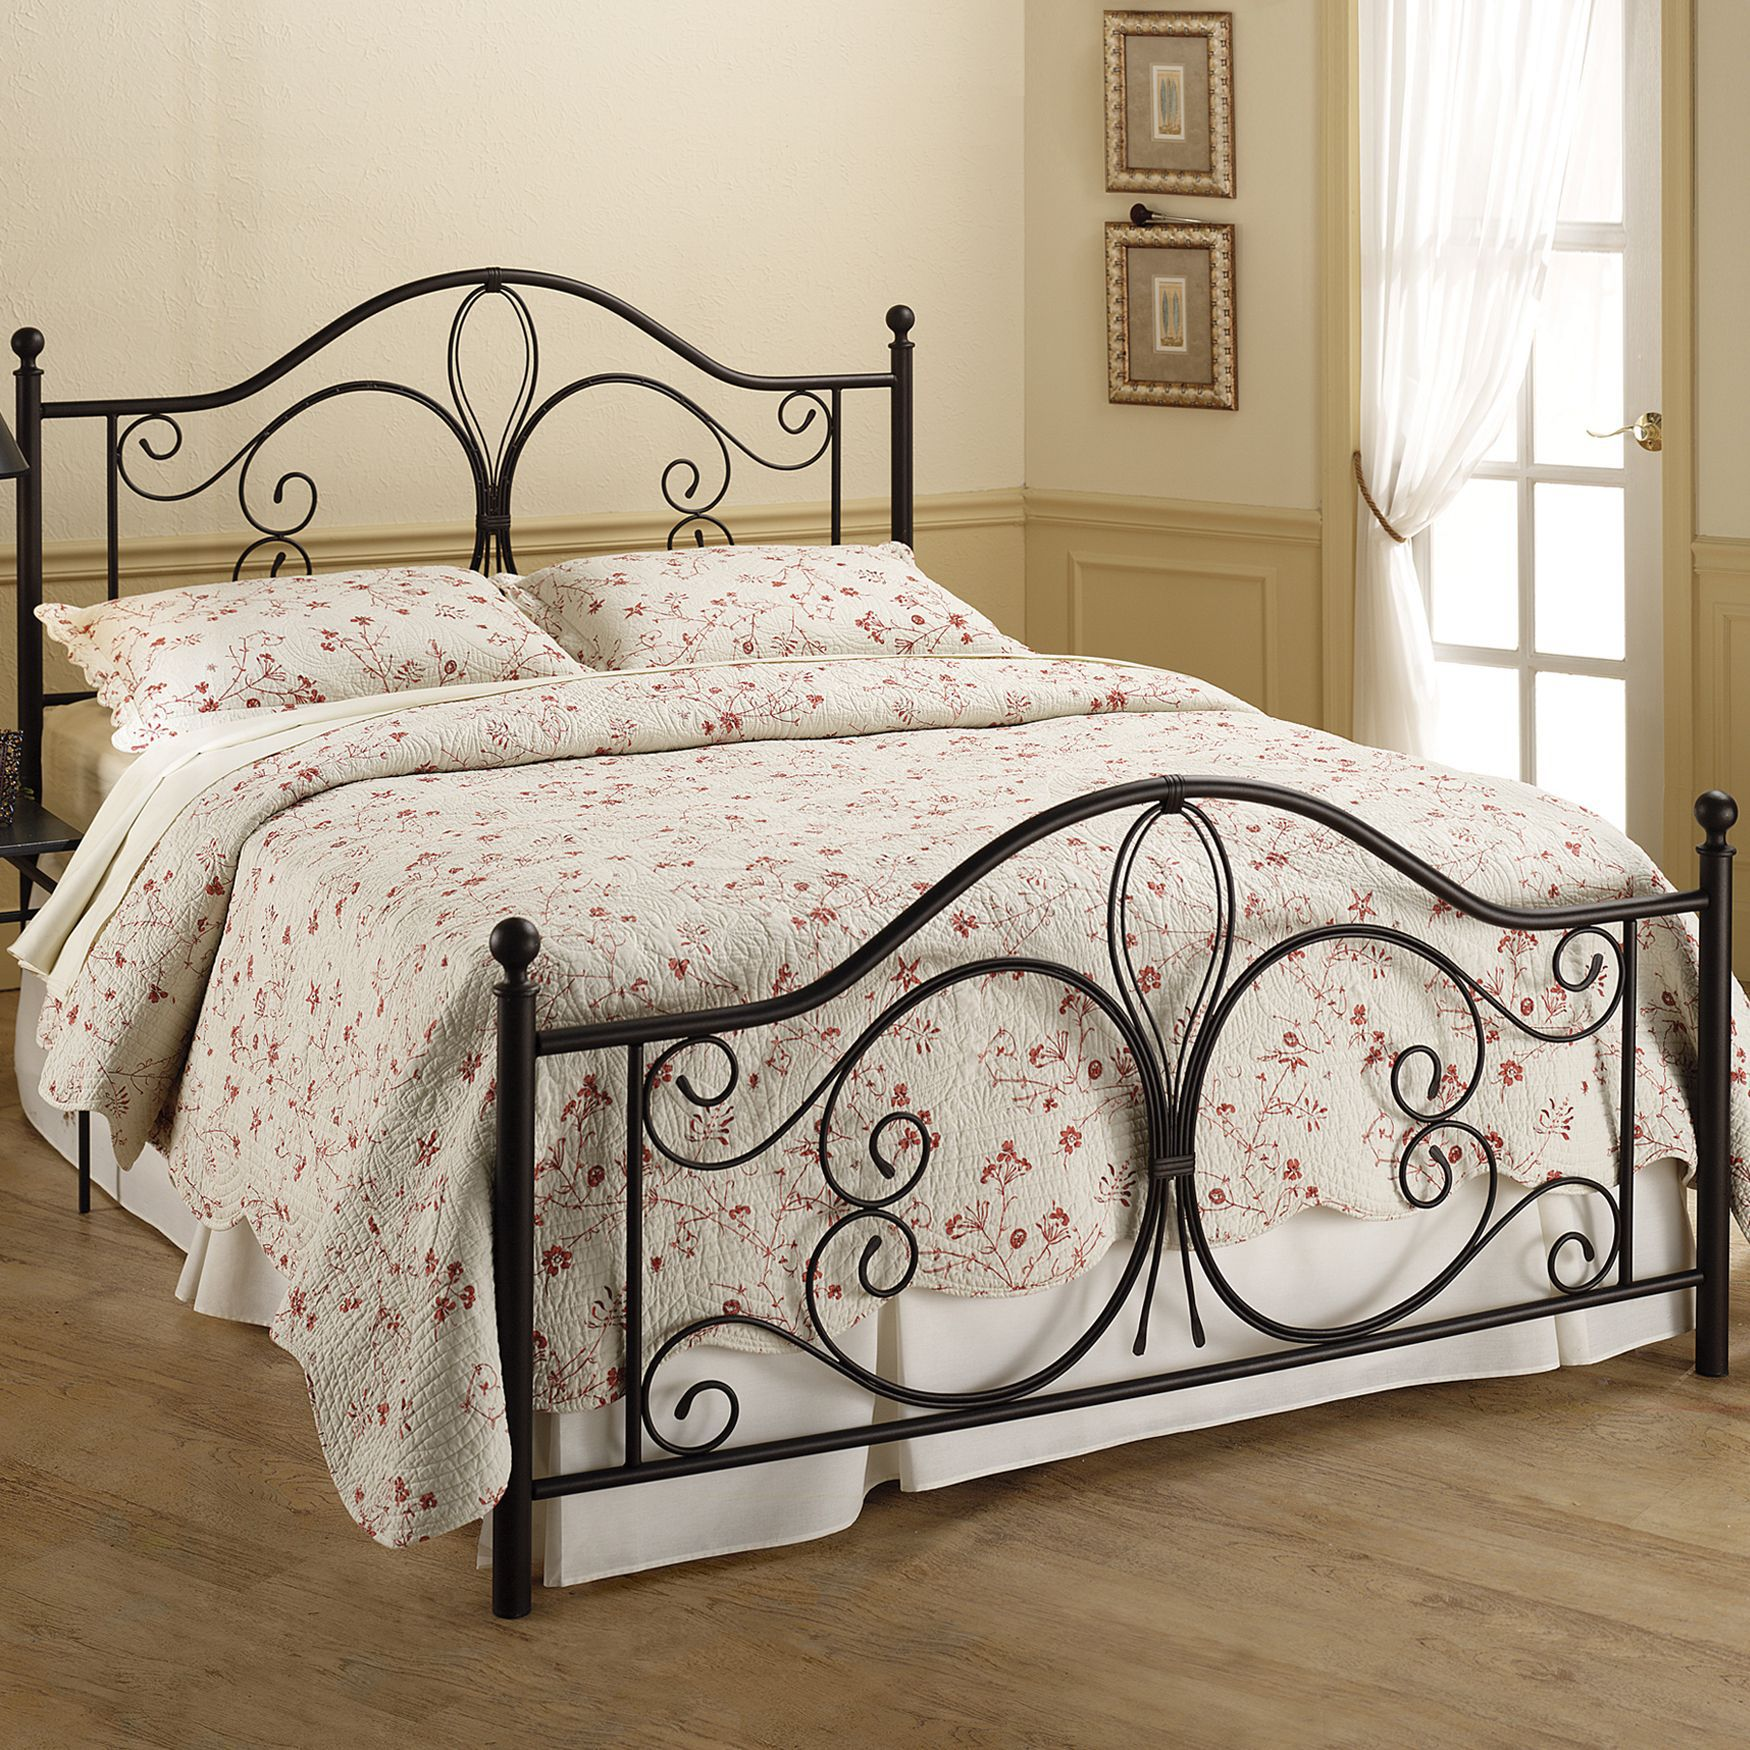 Queen Bed Set with Bed Frame, 83½'Lx61½'Wx49½'H, ANTIQUE BROWN